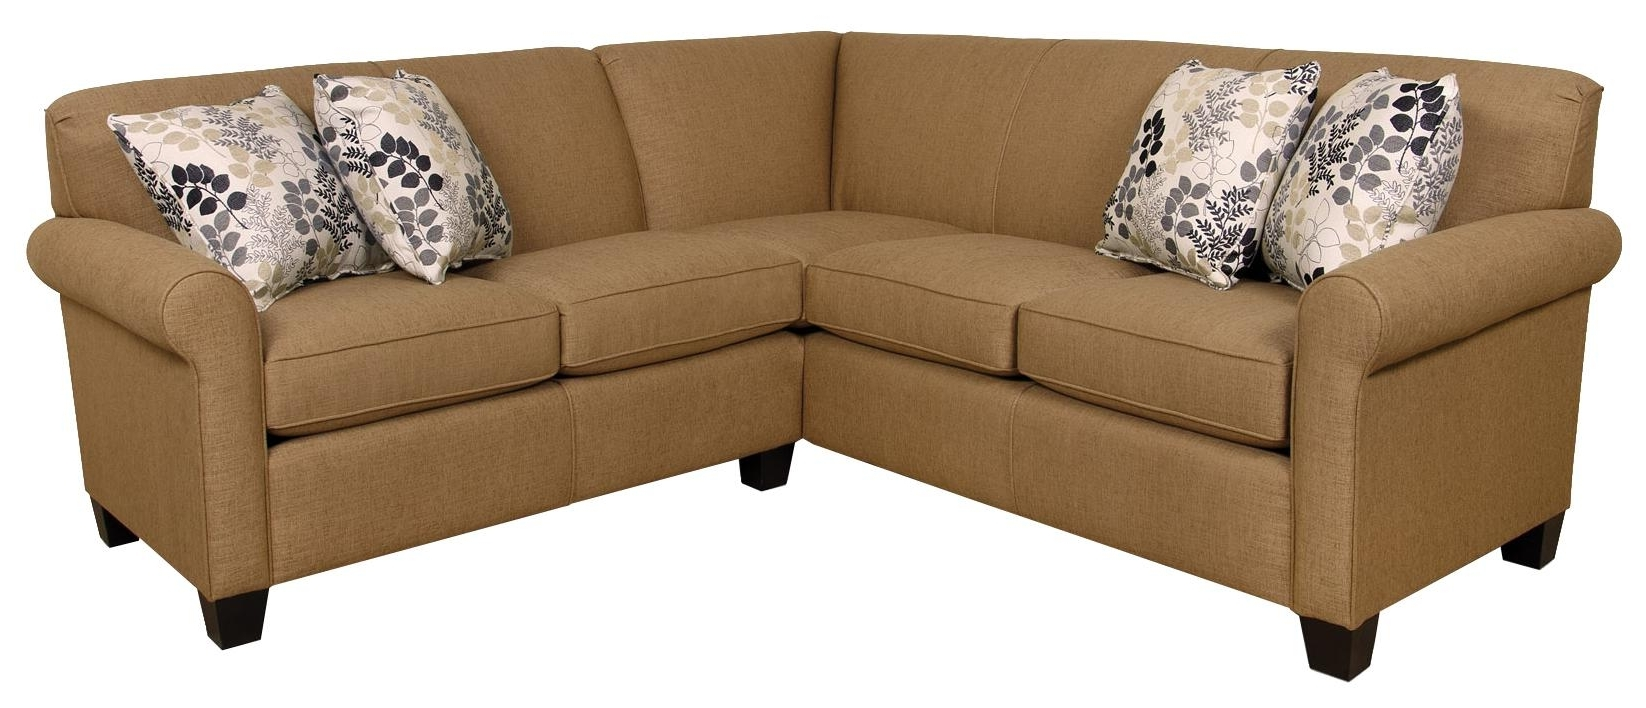 England Sectional Sofas In Favorite England Angie Small Corner Sectional Sofa – Ahfa – Sofa Sectional (View 8 of 20)